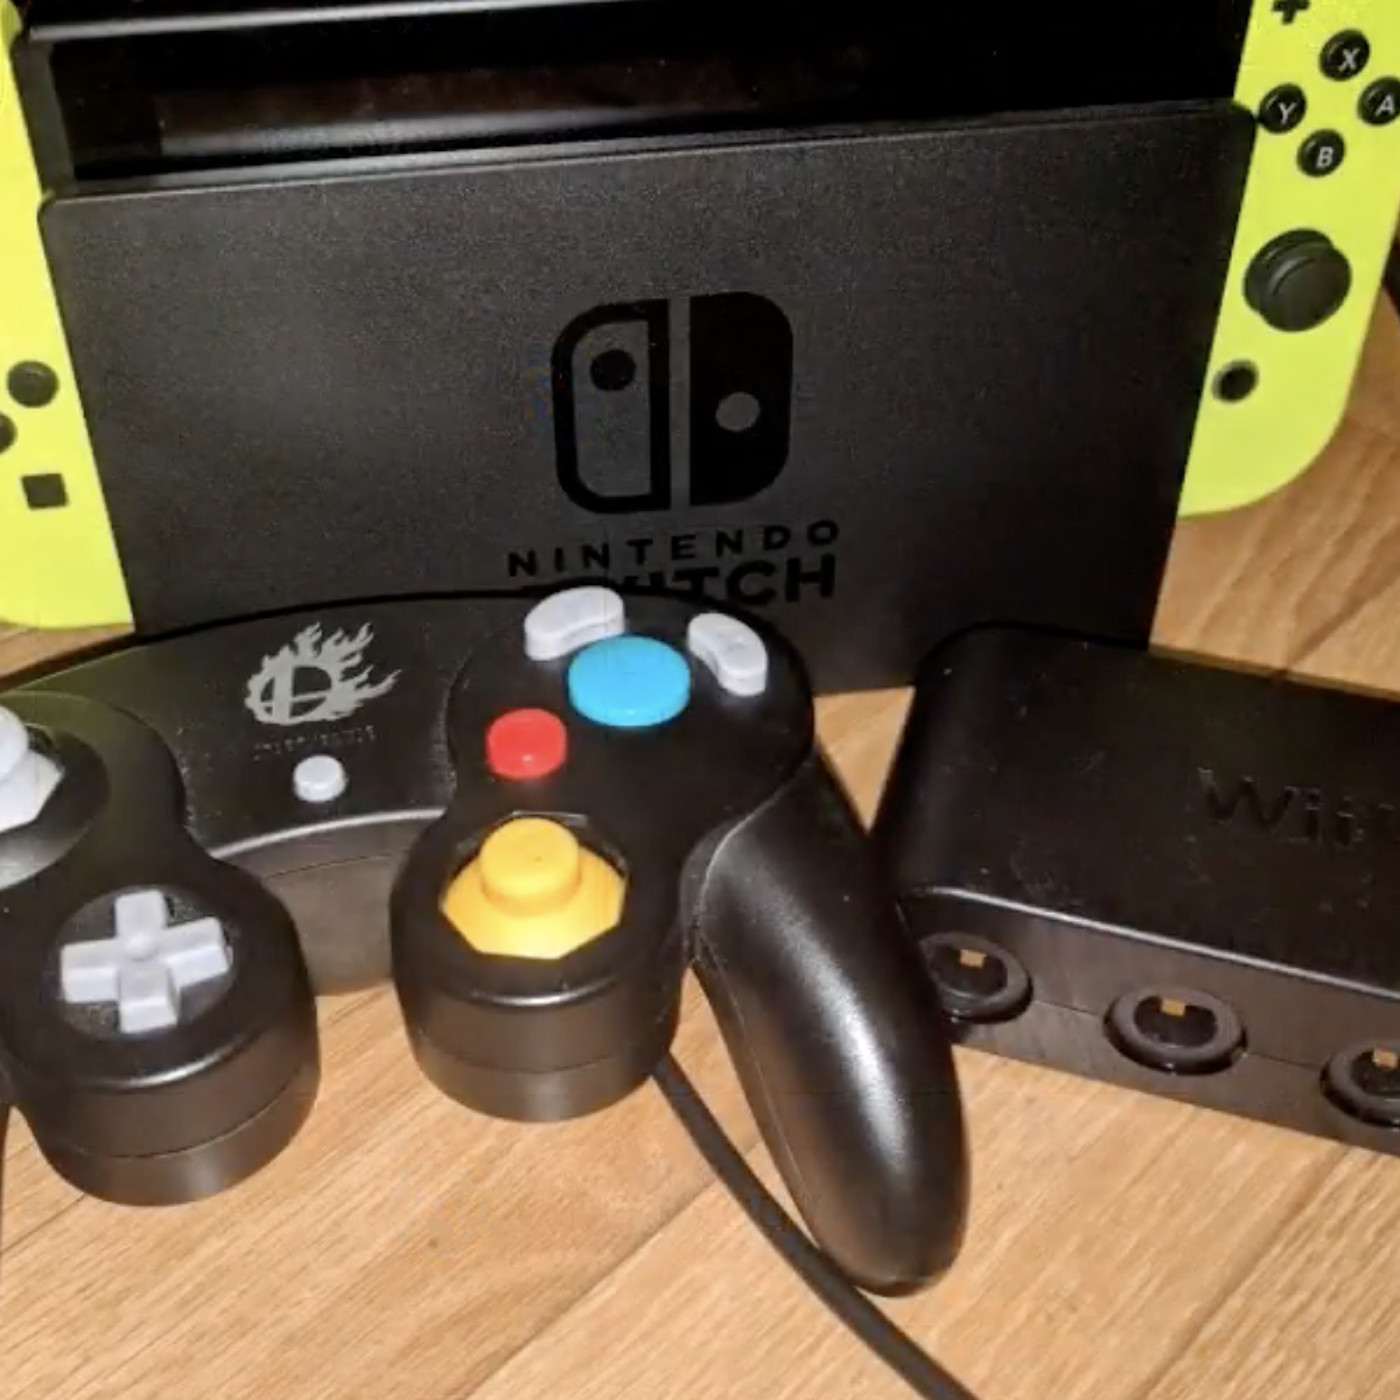 The Nintendo Switch now supports GameCube controllers - The Verge